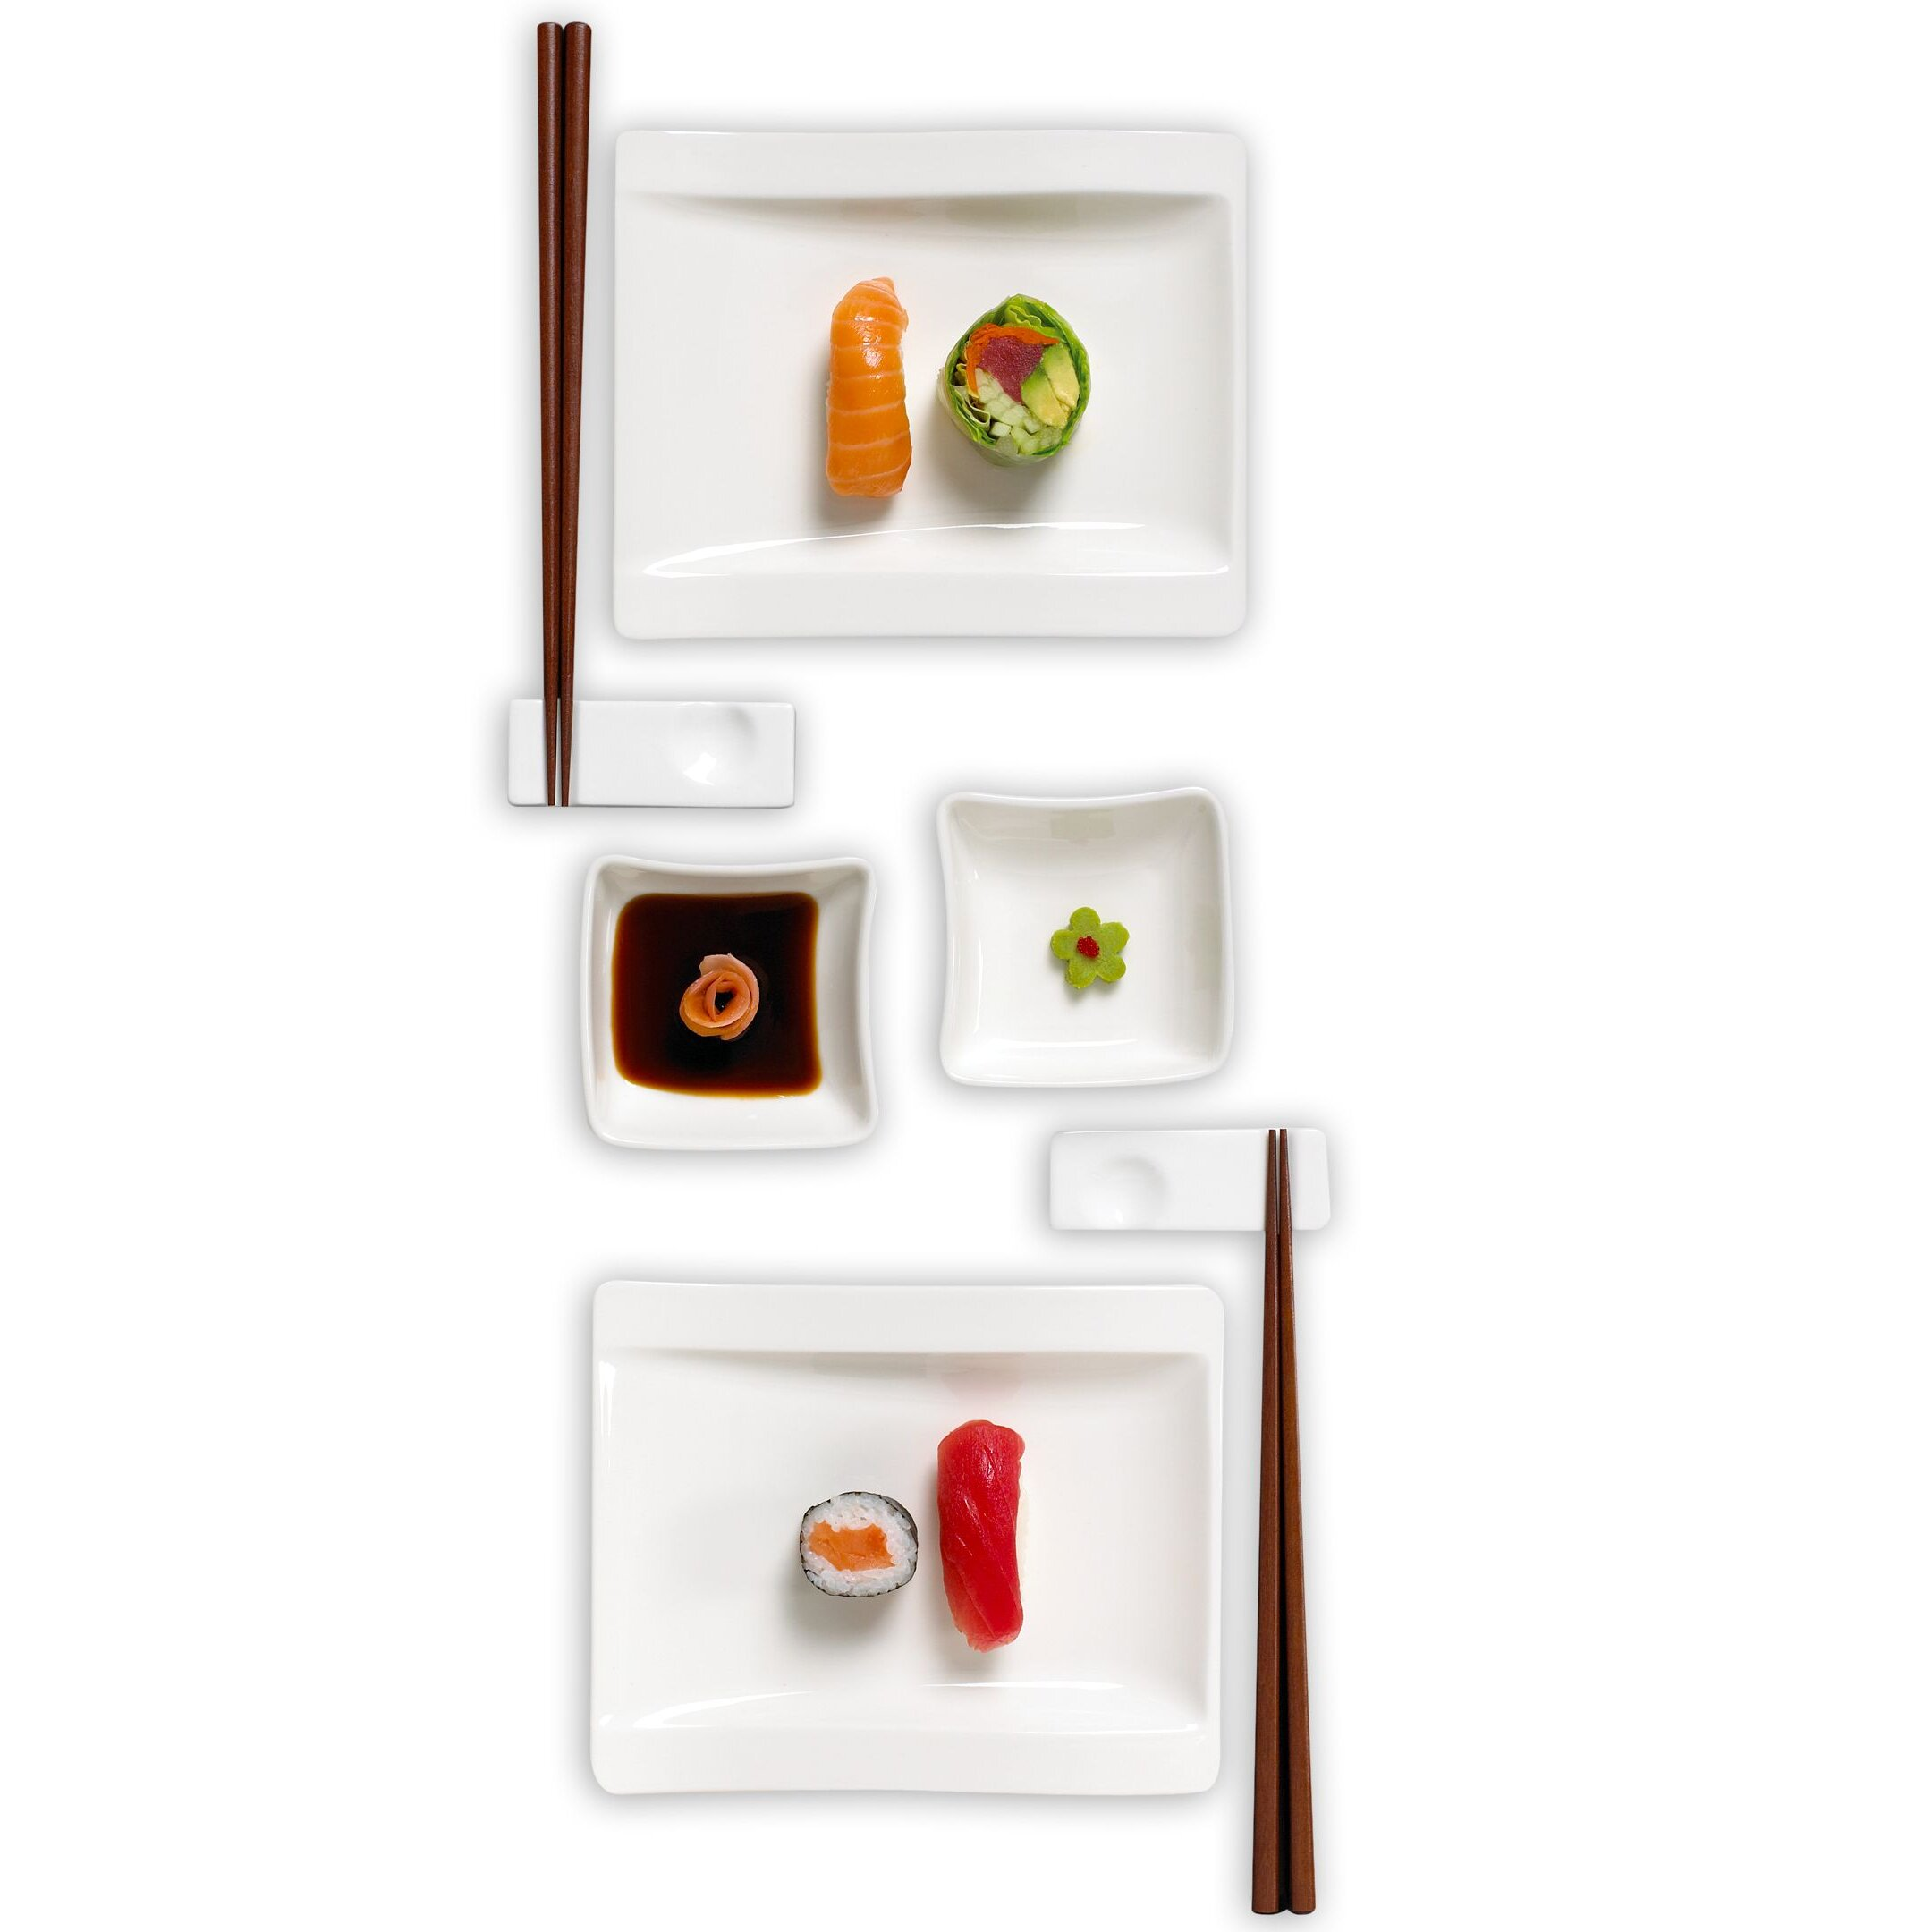 Villeroy and boch new wave set - Villeroy Amp Boch New Wave Sushi For Two 8 Piece Dinnerware Set